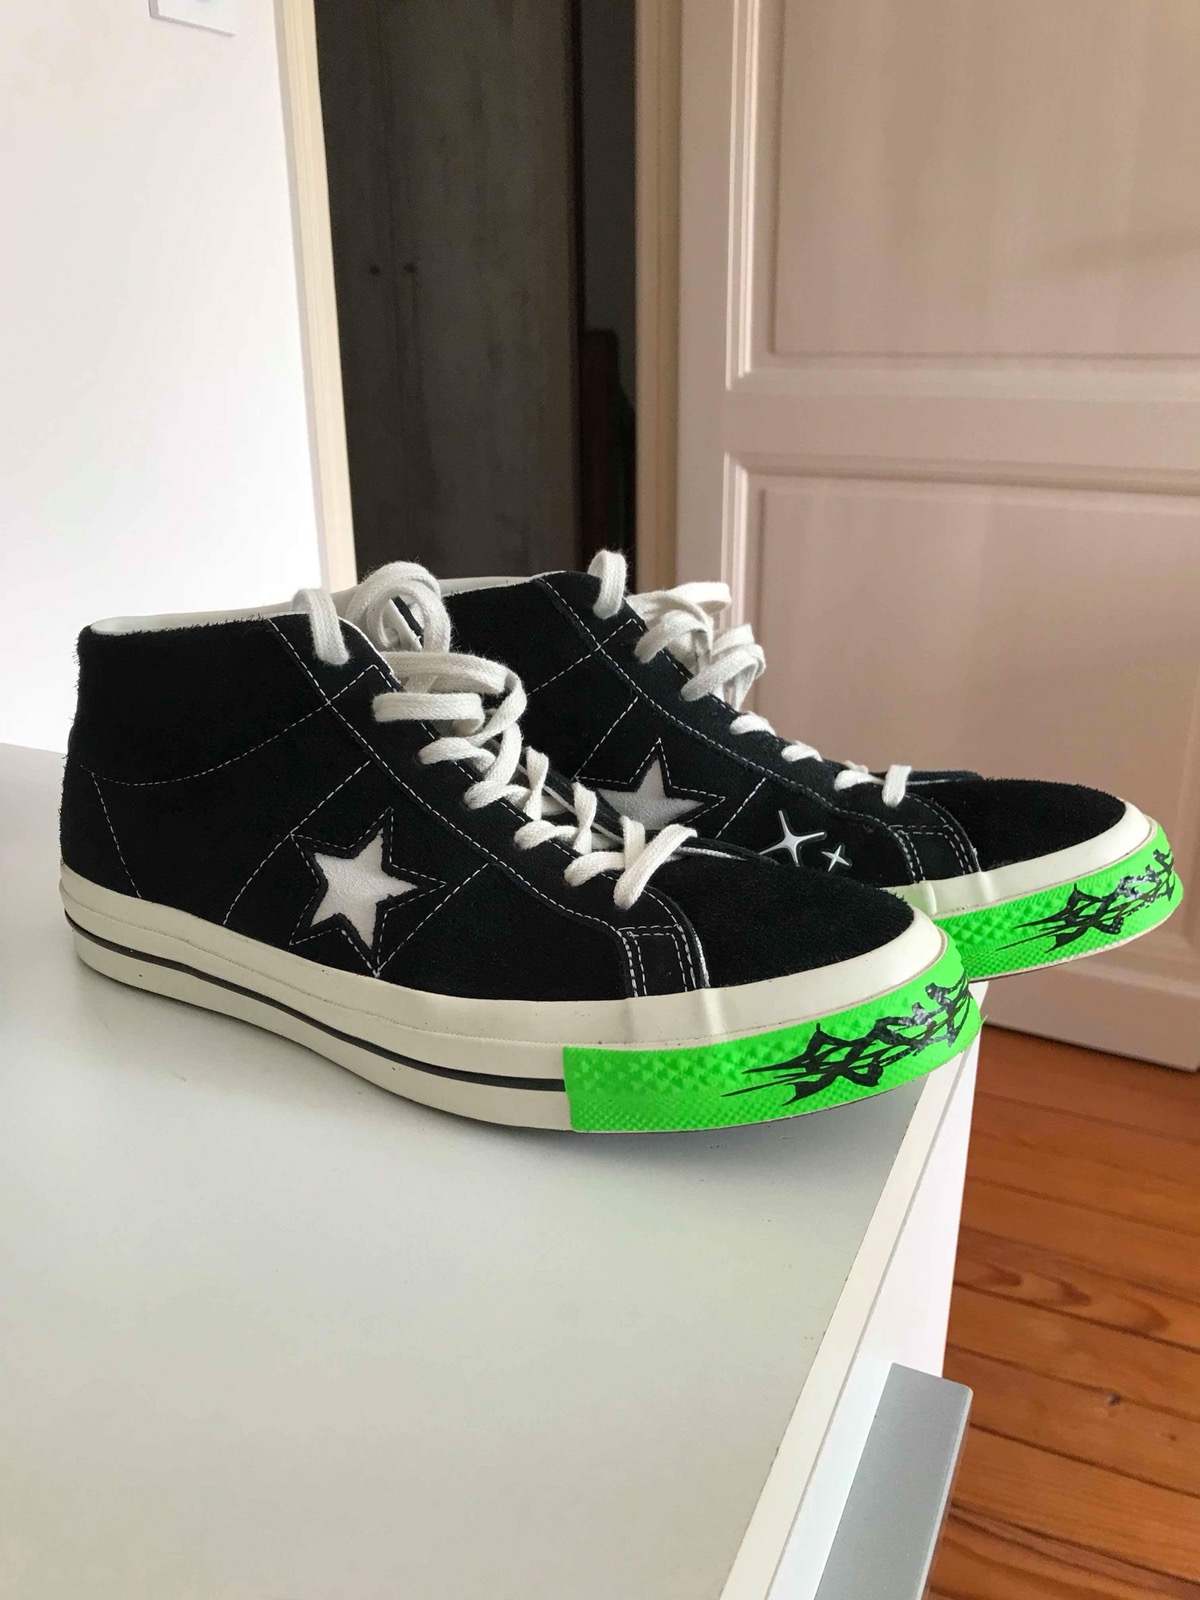 199b8c68cb60 Yung Lean Yung Lean Converse One Star Size 9.5 - Hi-Top Sneakers for Sale -  Grailed